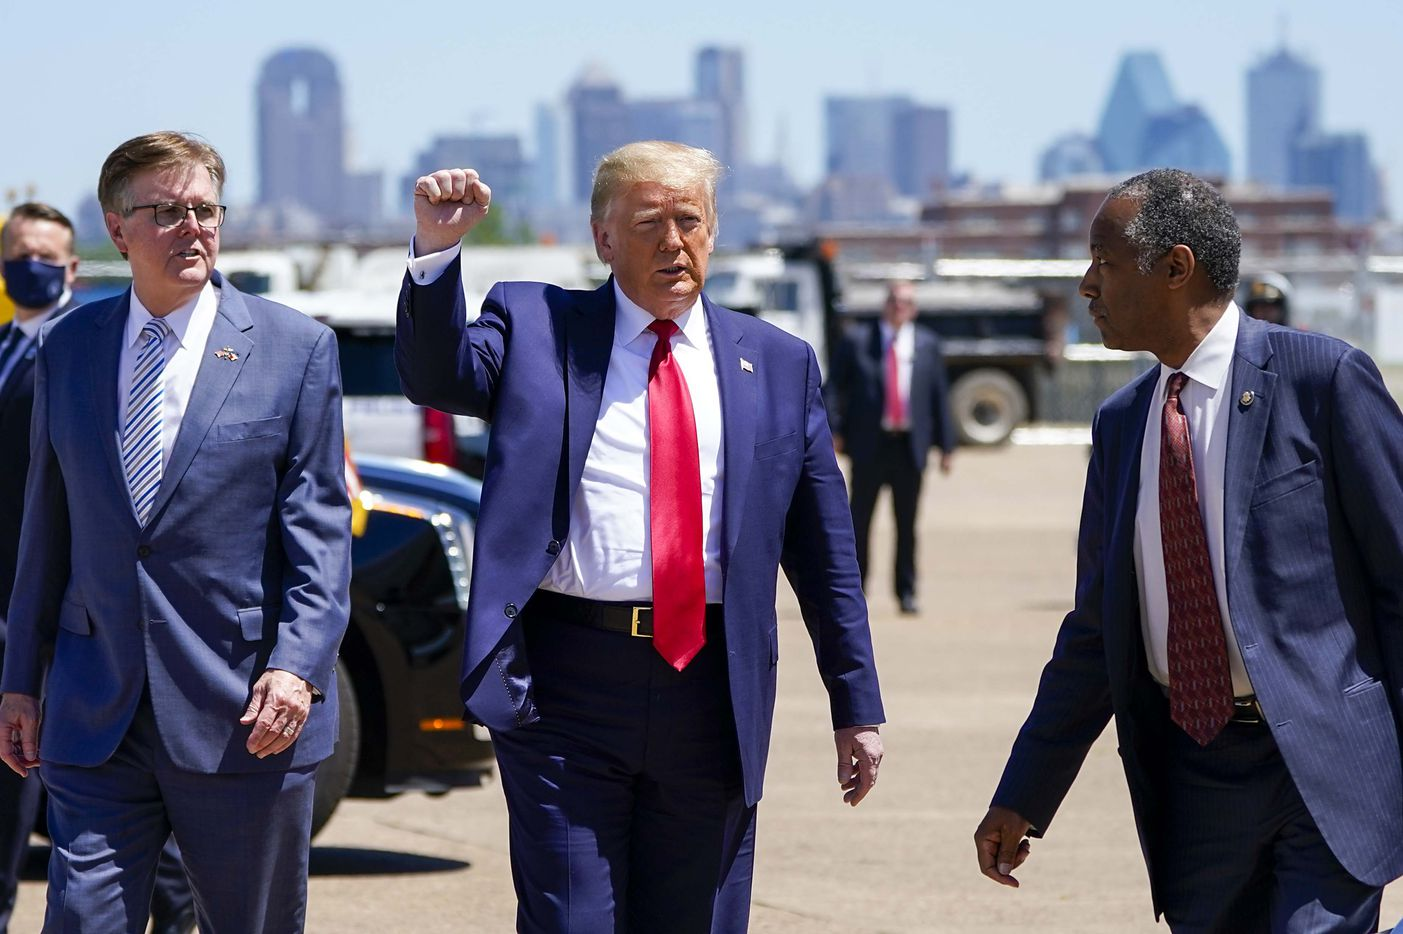 President Donald Trump arrives at Dallas Love Field on Thursday, June 11, 2020, in Dallas. (Smiley N. Pool/The Dallas Morning News)